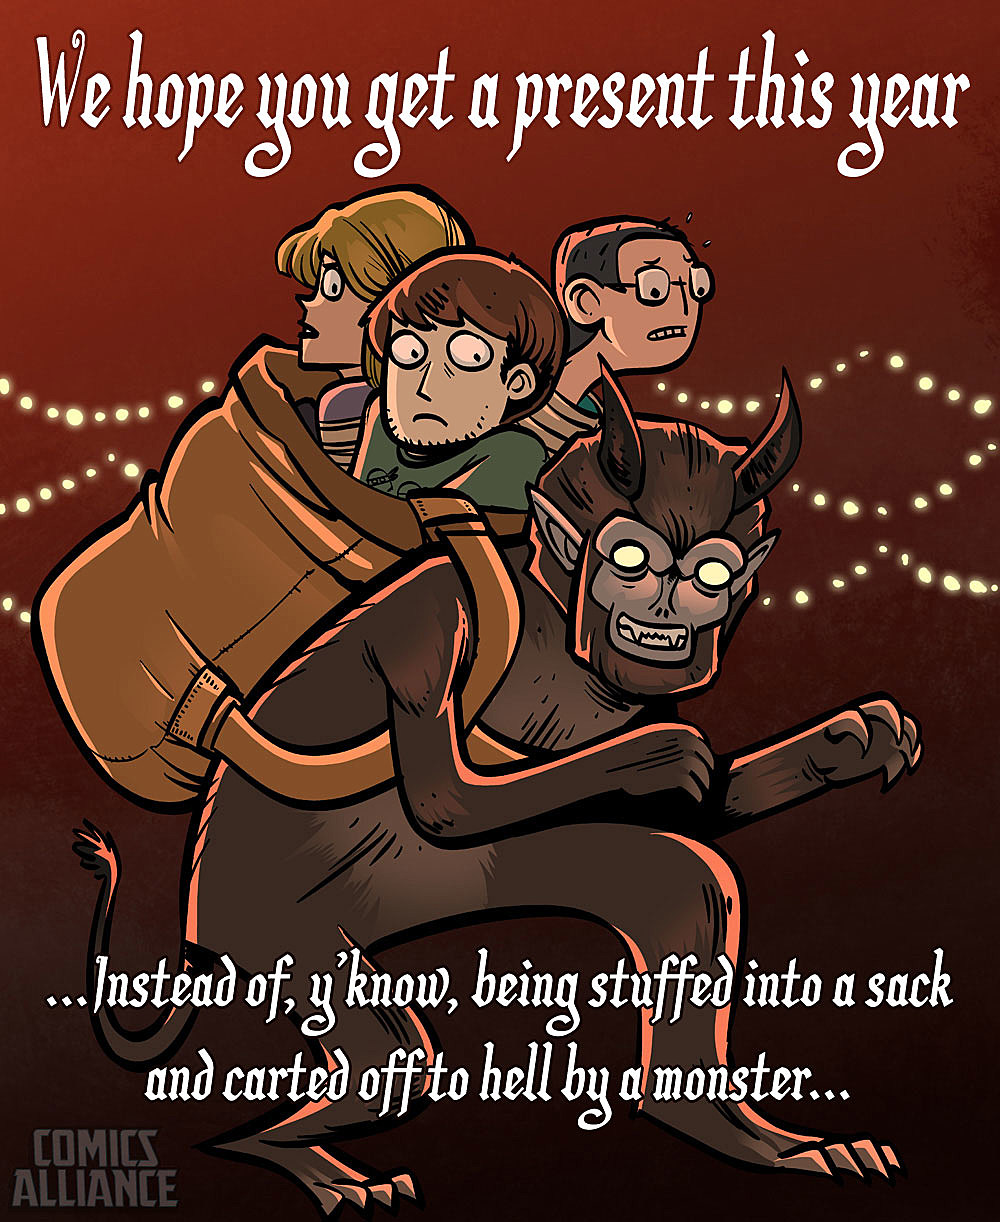 Comics Alliance Holiday Card: Krampus Strikes! (By Nedroid)